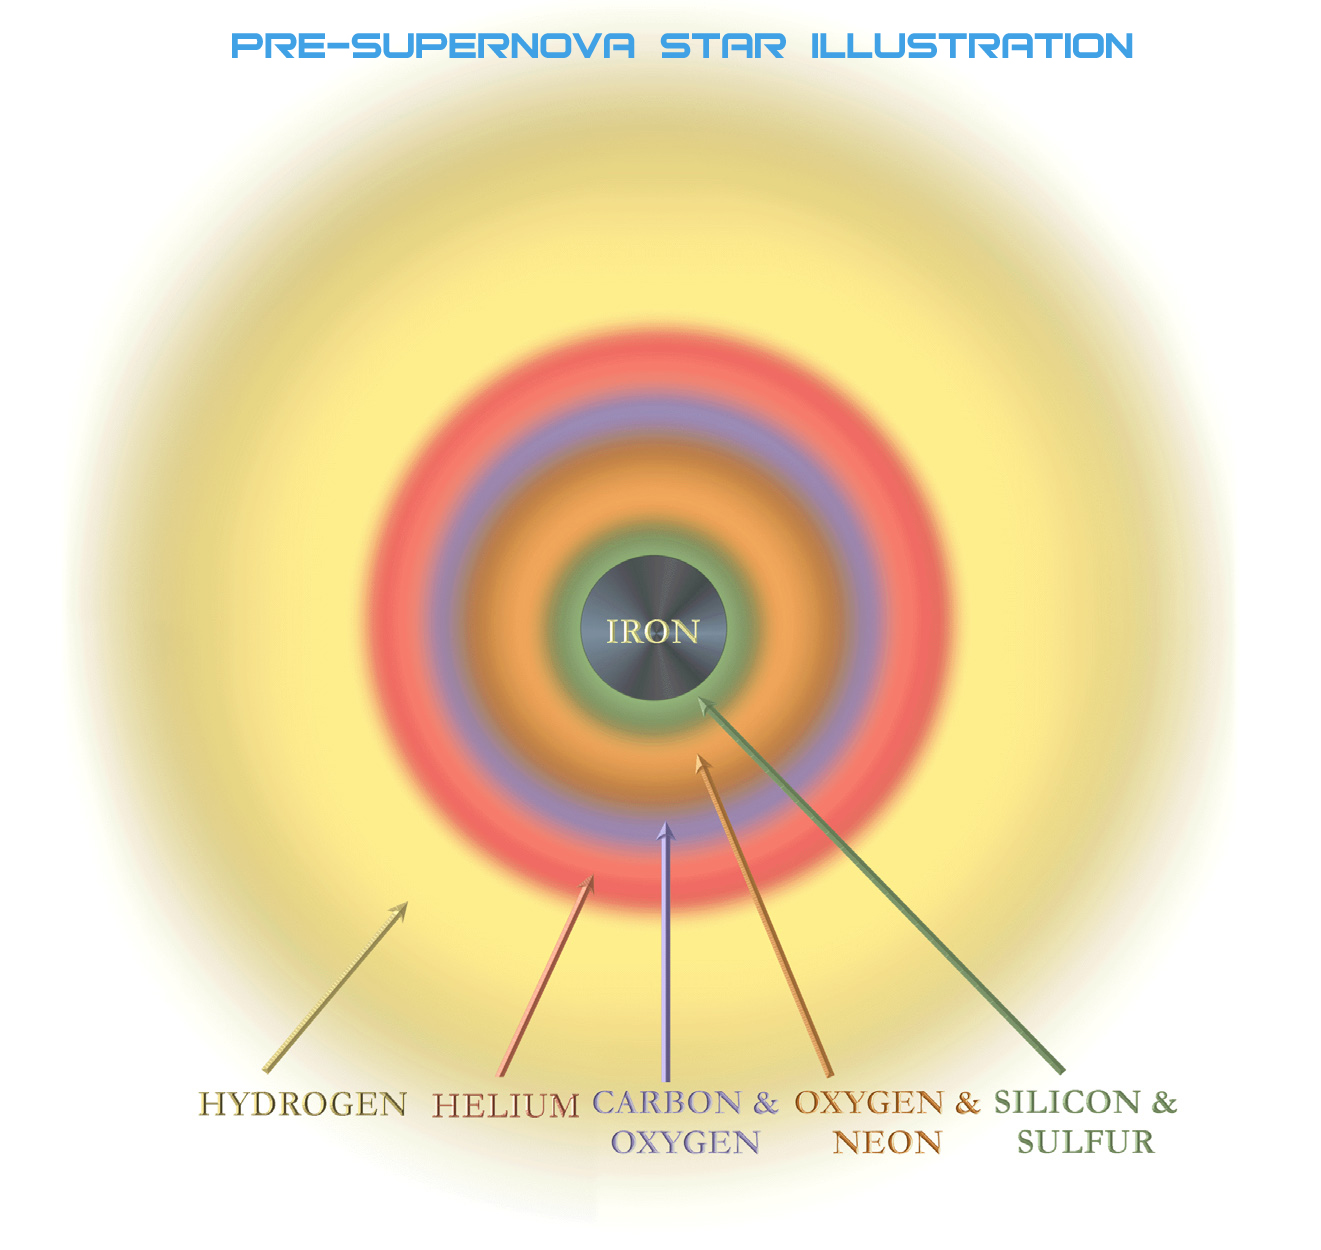 Structure of a massive star shortly before it explodes as a supernova